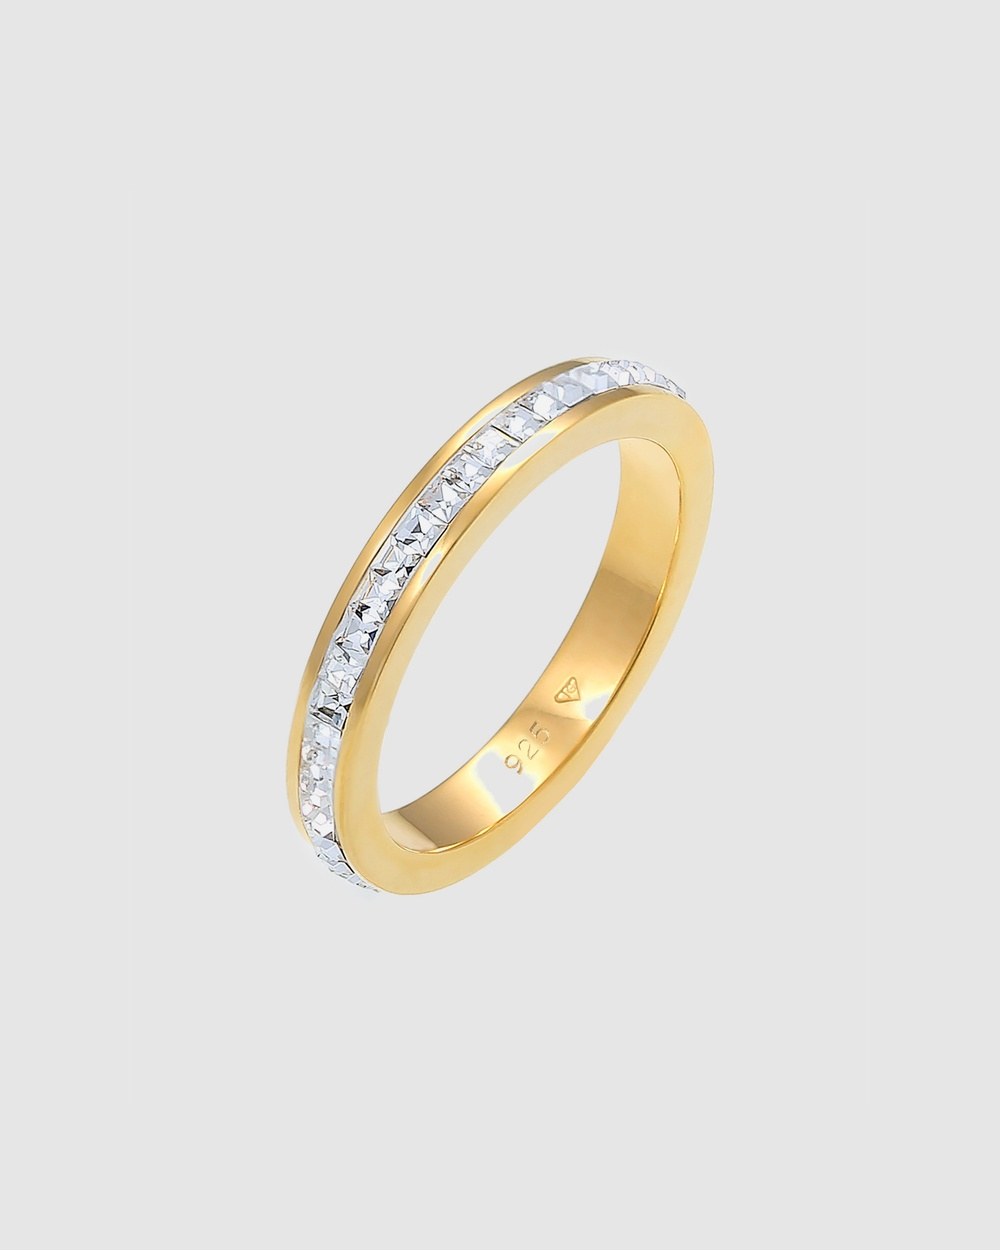 Elli Jewelry Ring Sparkling Elegant Crystals 925 Sterling Silver Gold Plated Jewellery Gold